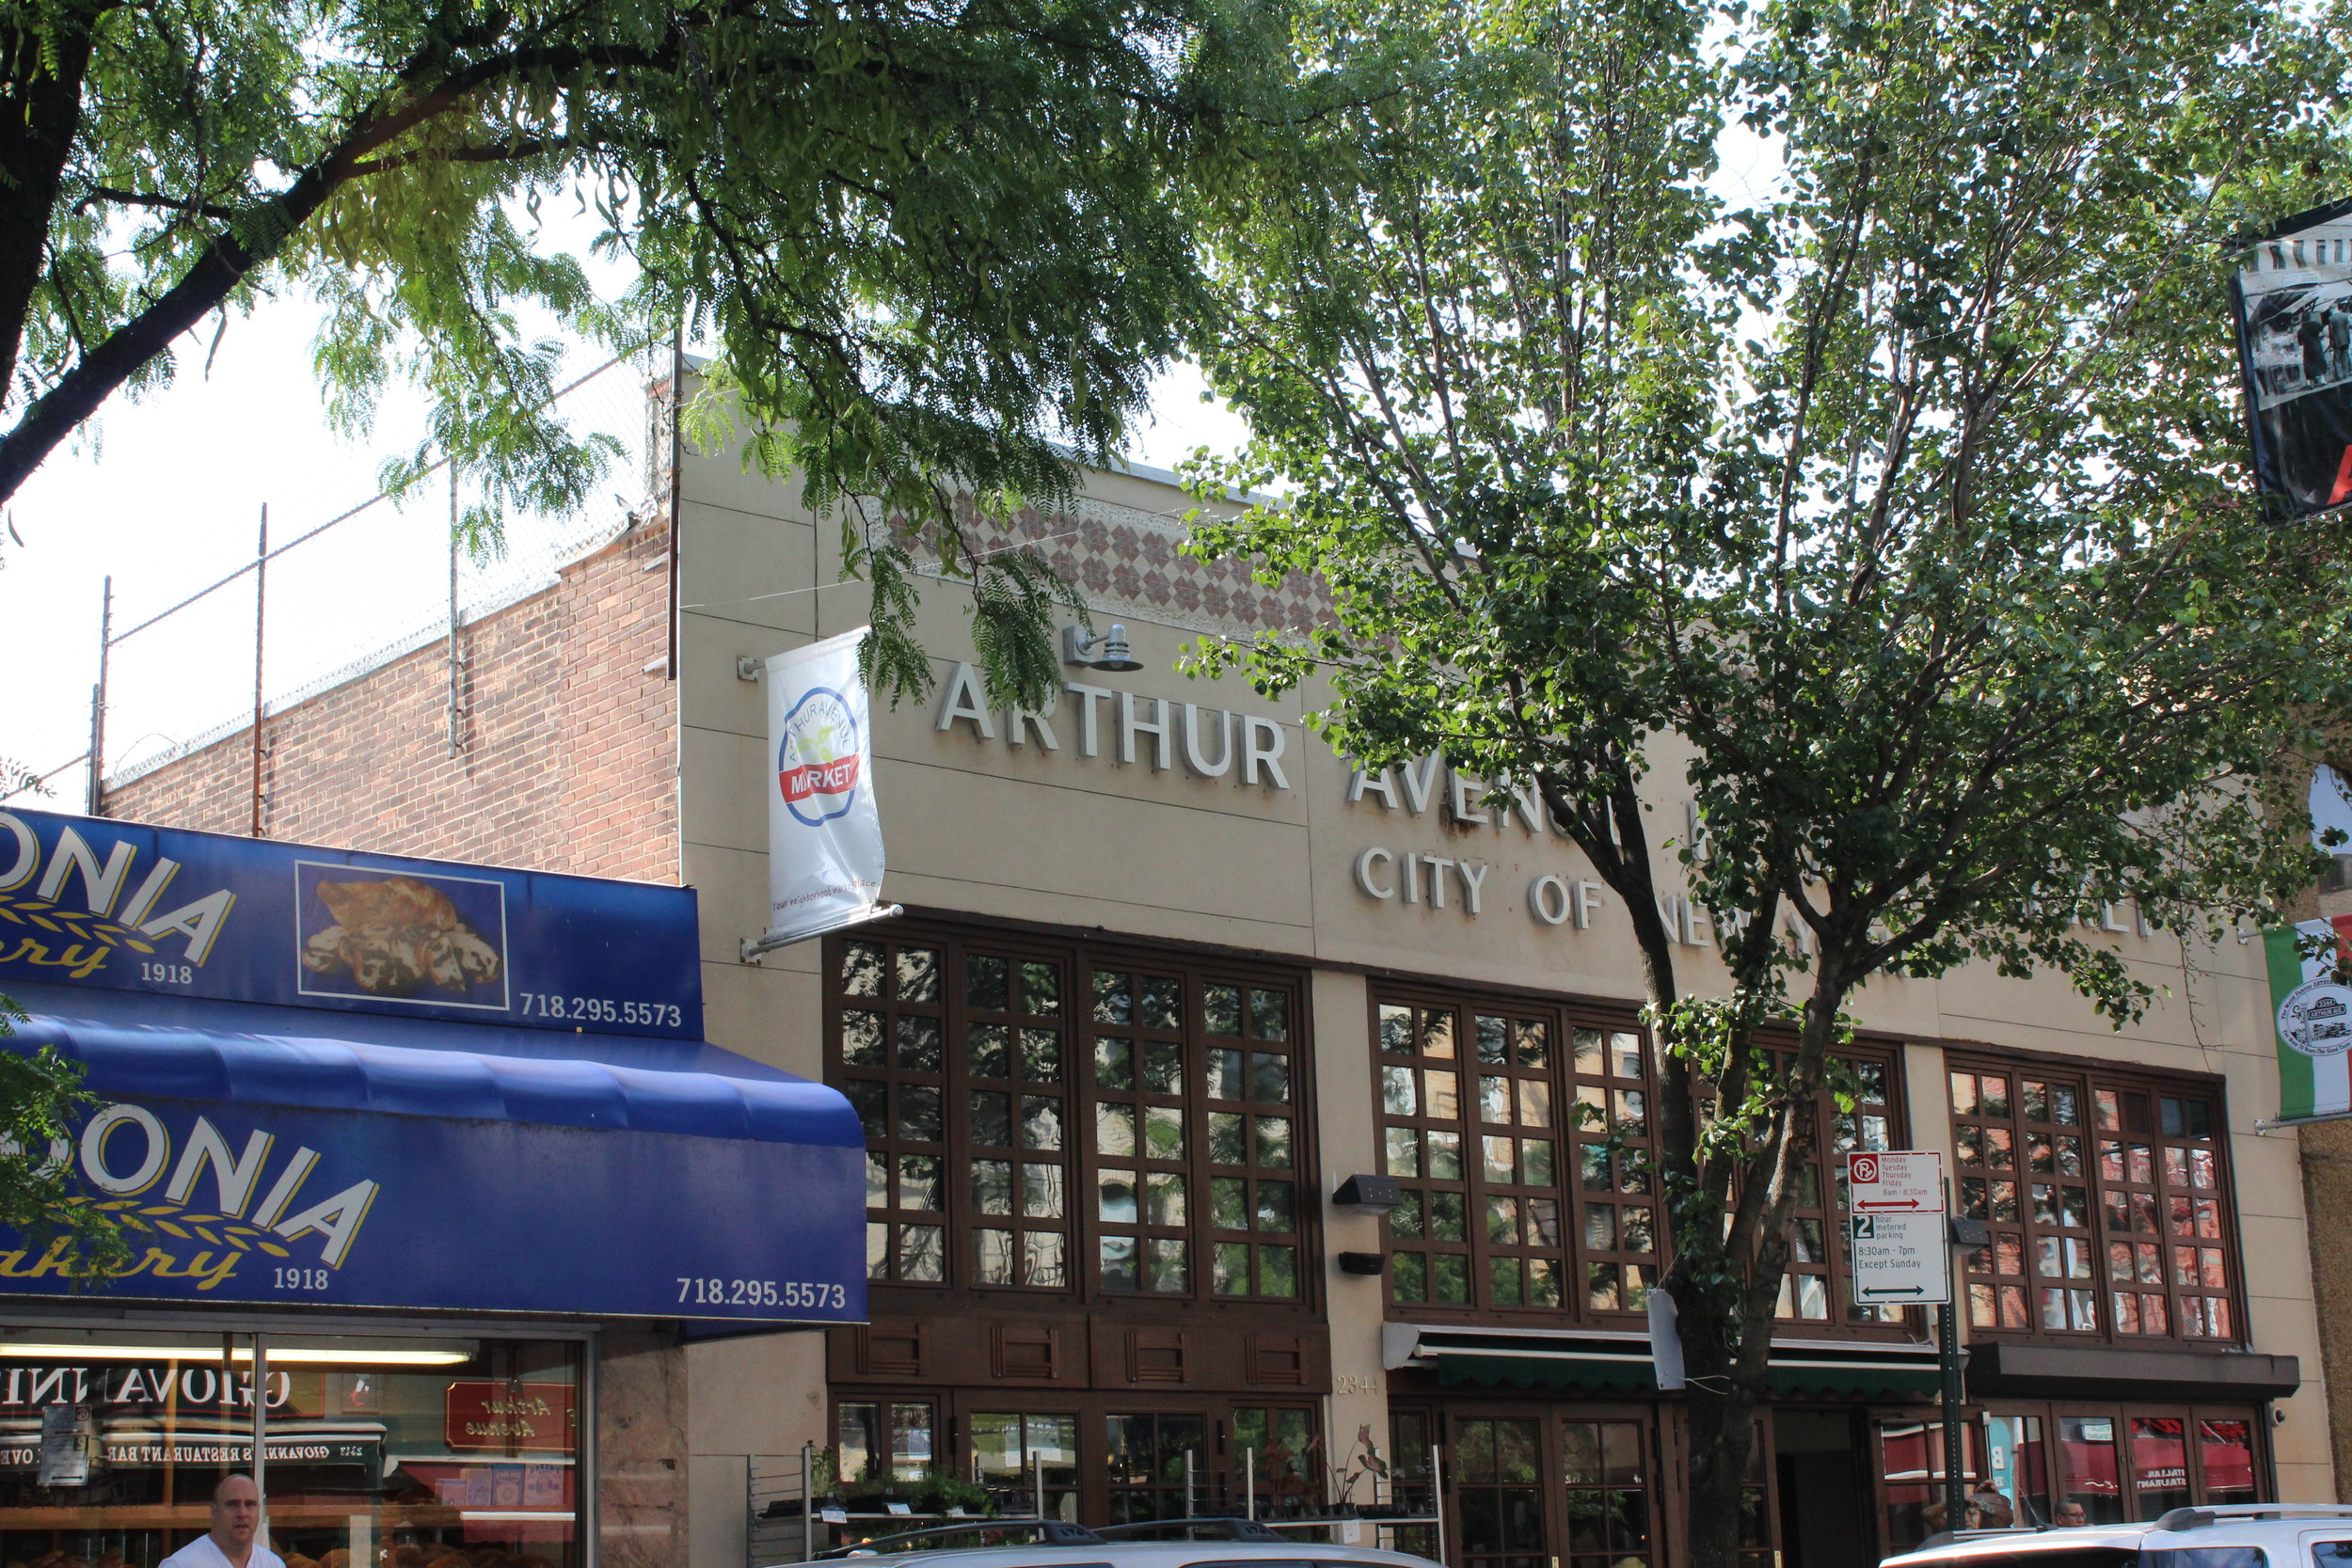 Madonia is right next to the Arthur Avenue Retail Market